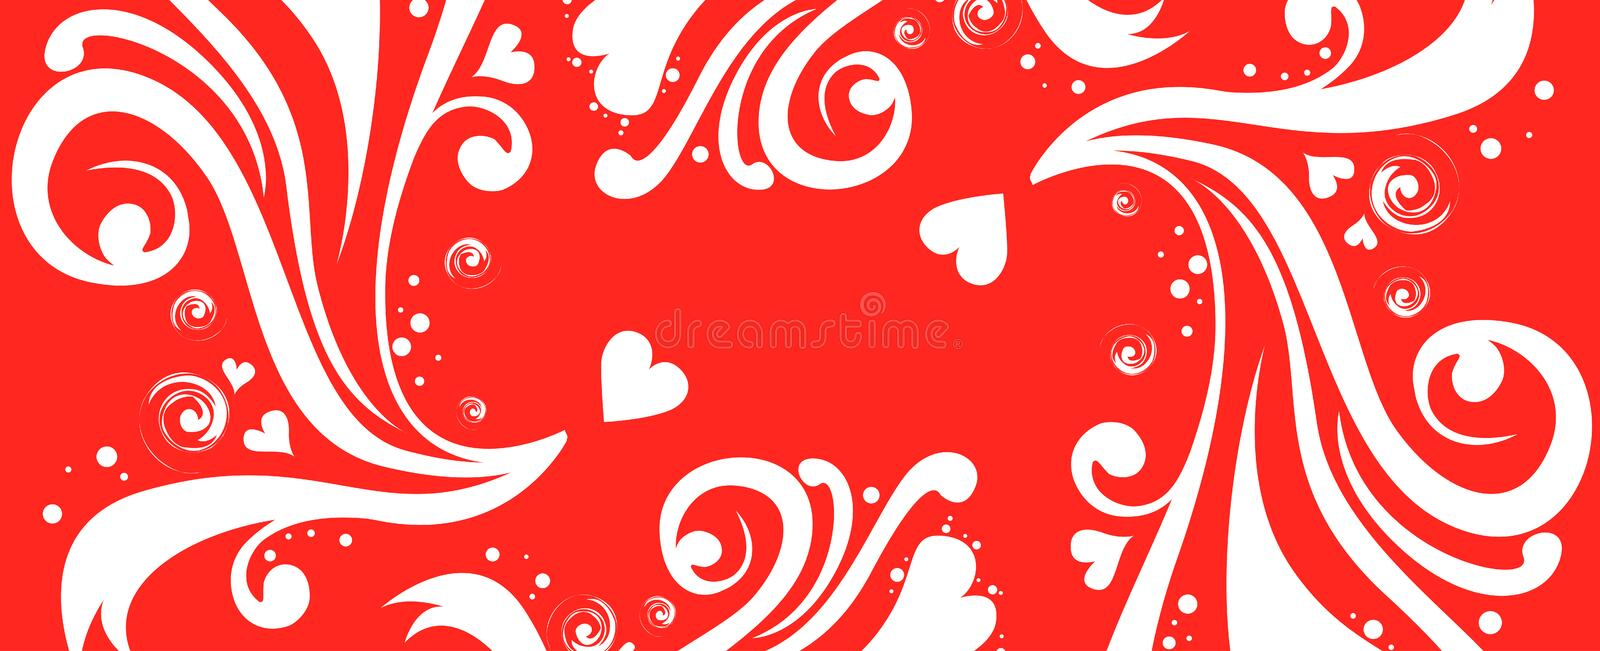 Download Red Flower And Heart Pattern Royalty Free Stock Photos - Image: 12545198